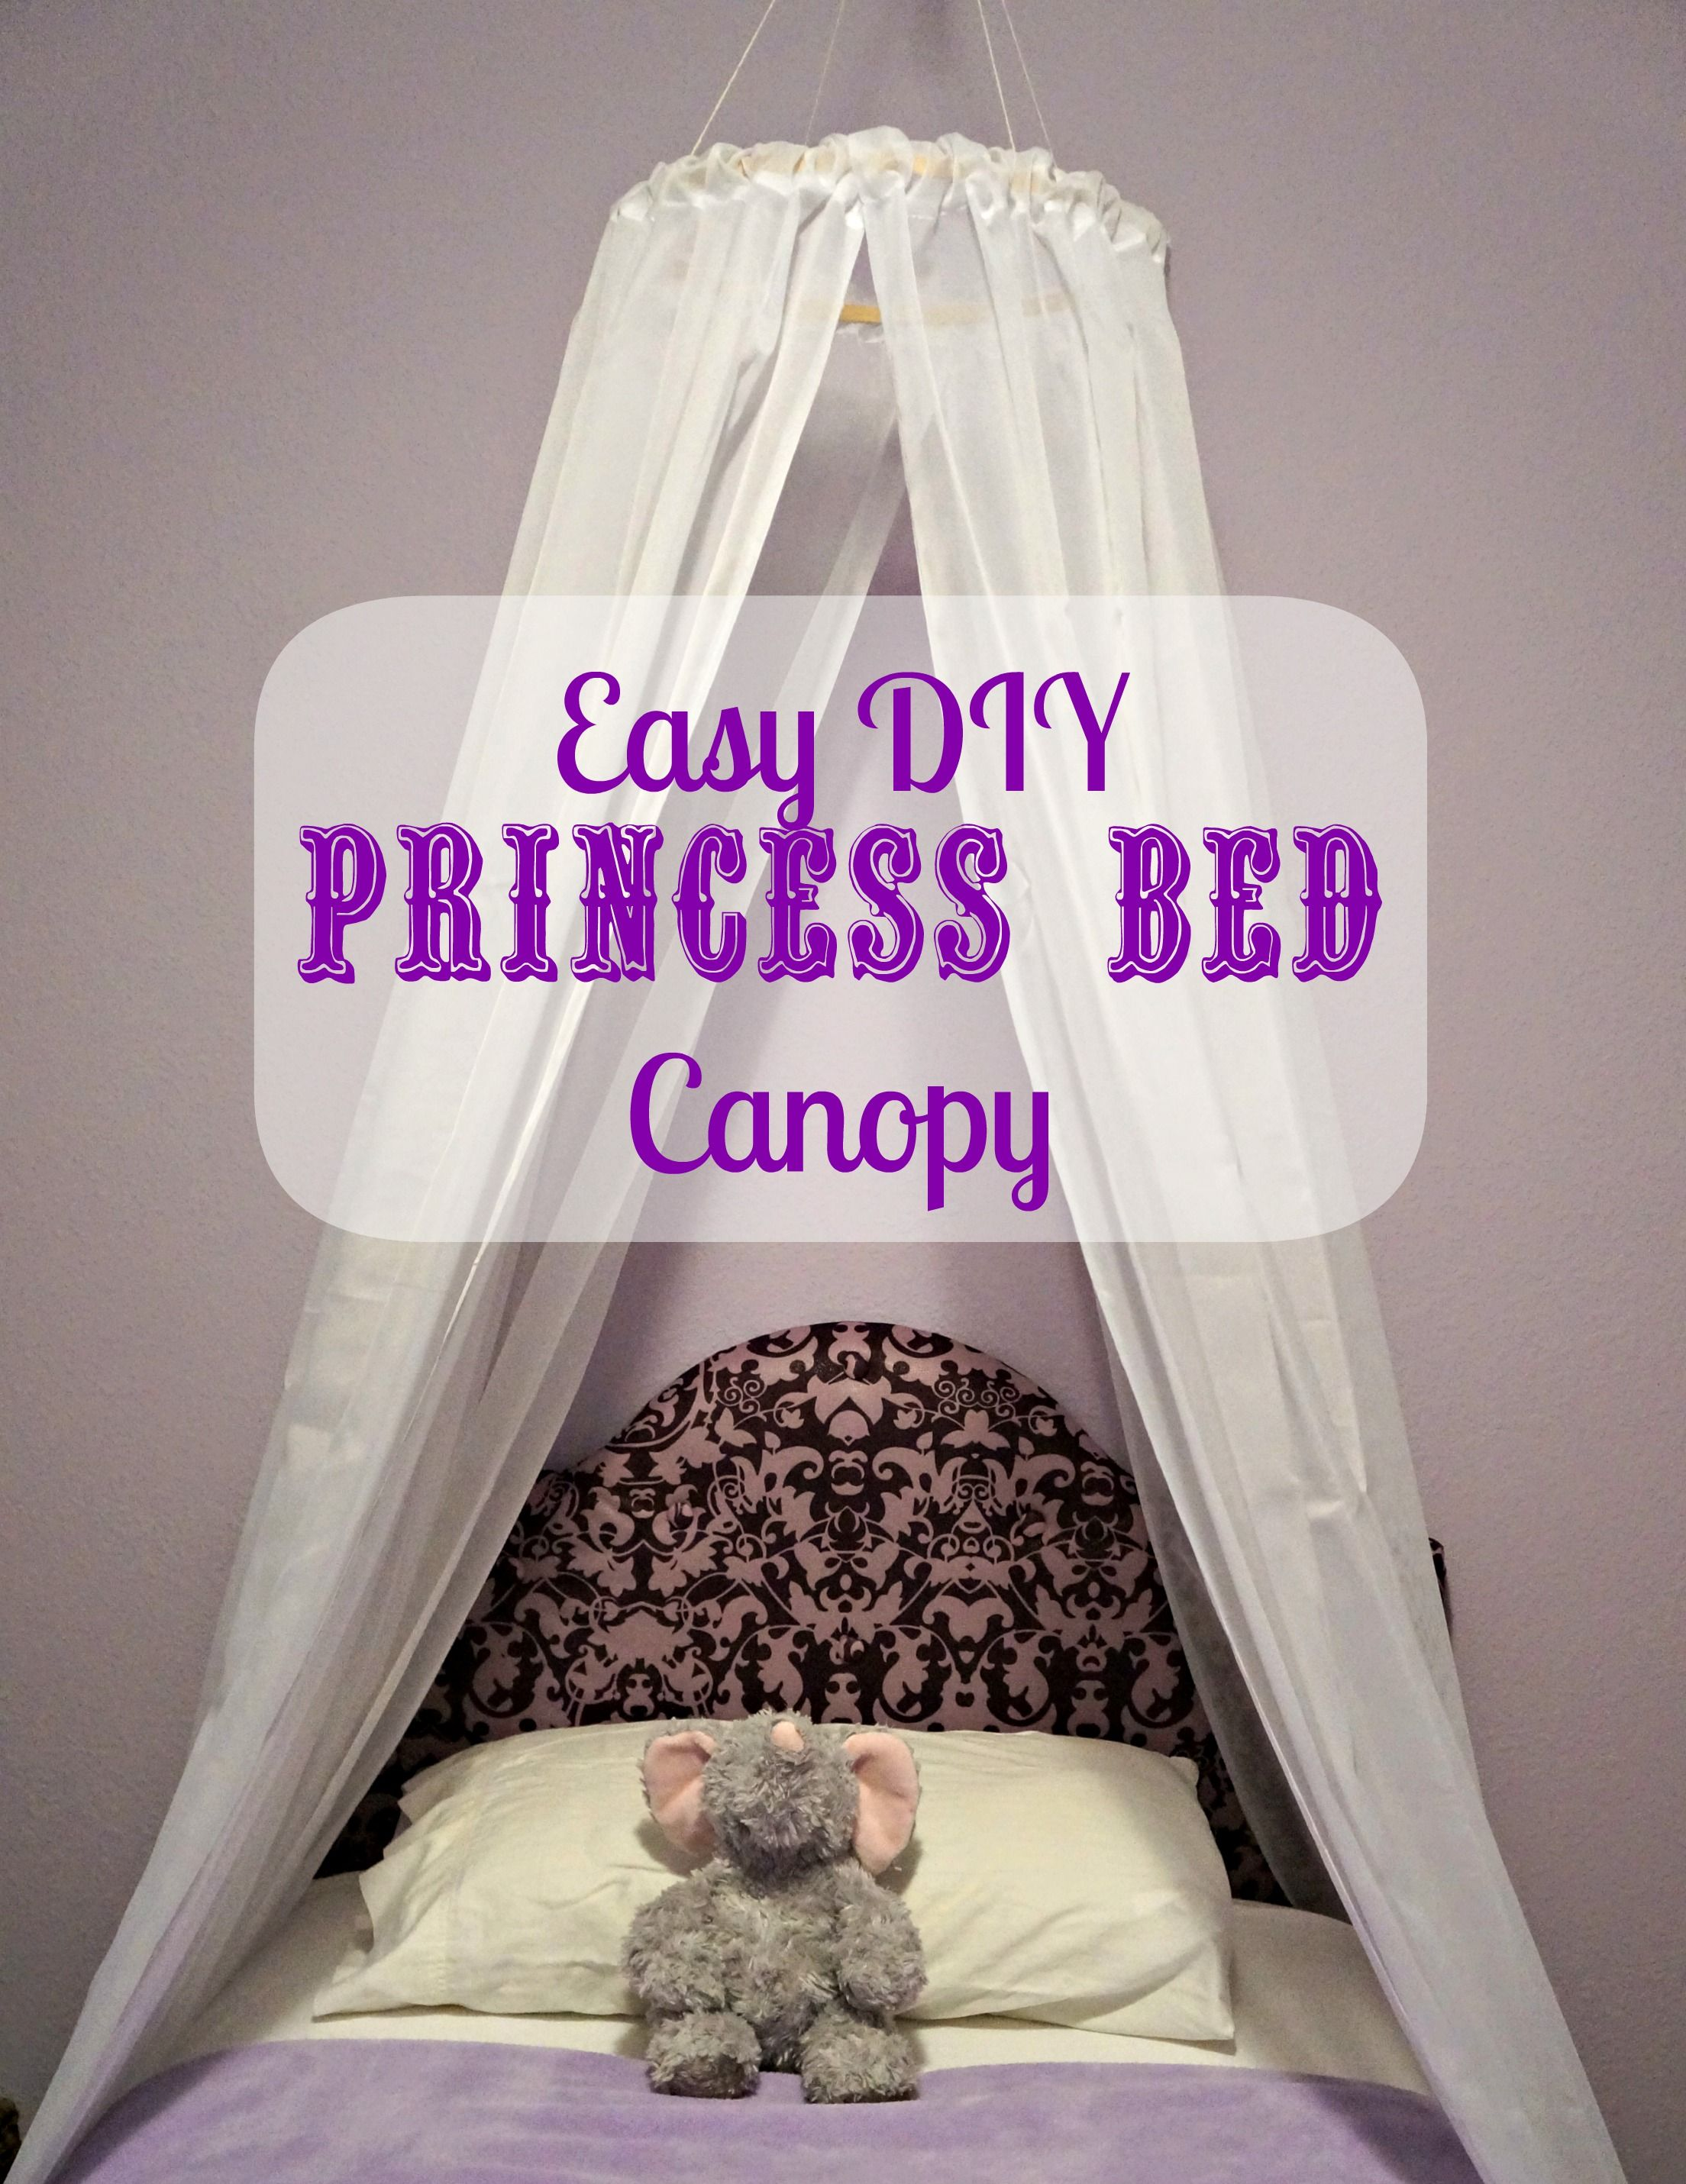 Little Girl Canopy Bed Ideas Diy Easy Princess Bed Canopy I 39m Thinking About Doing This